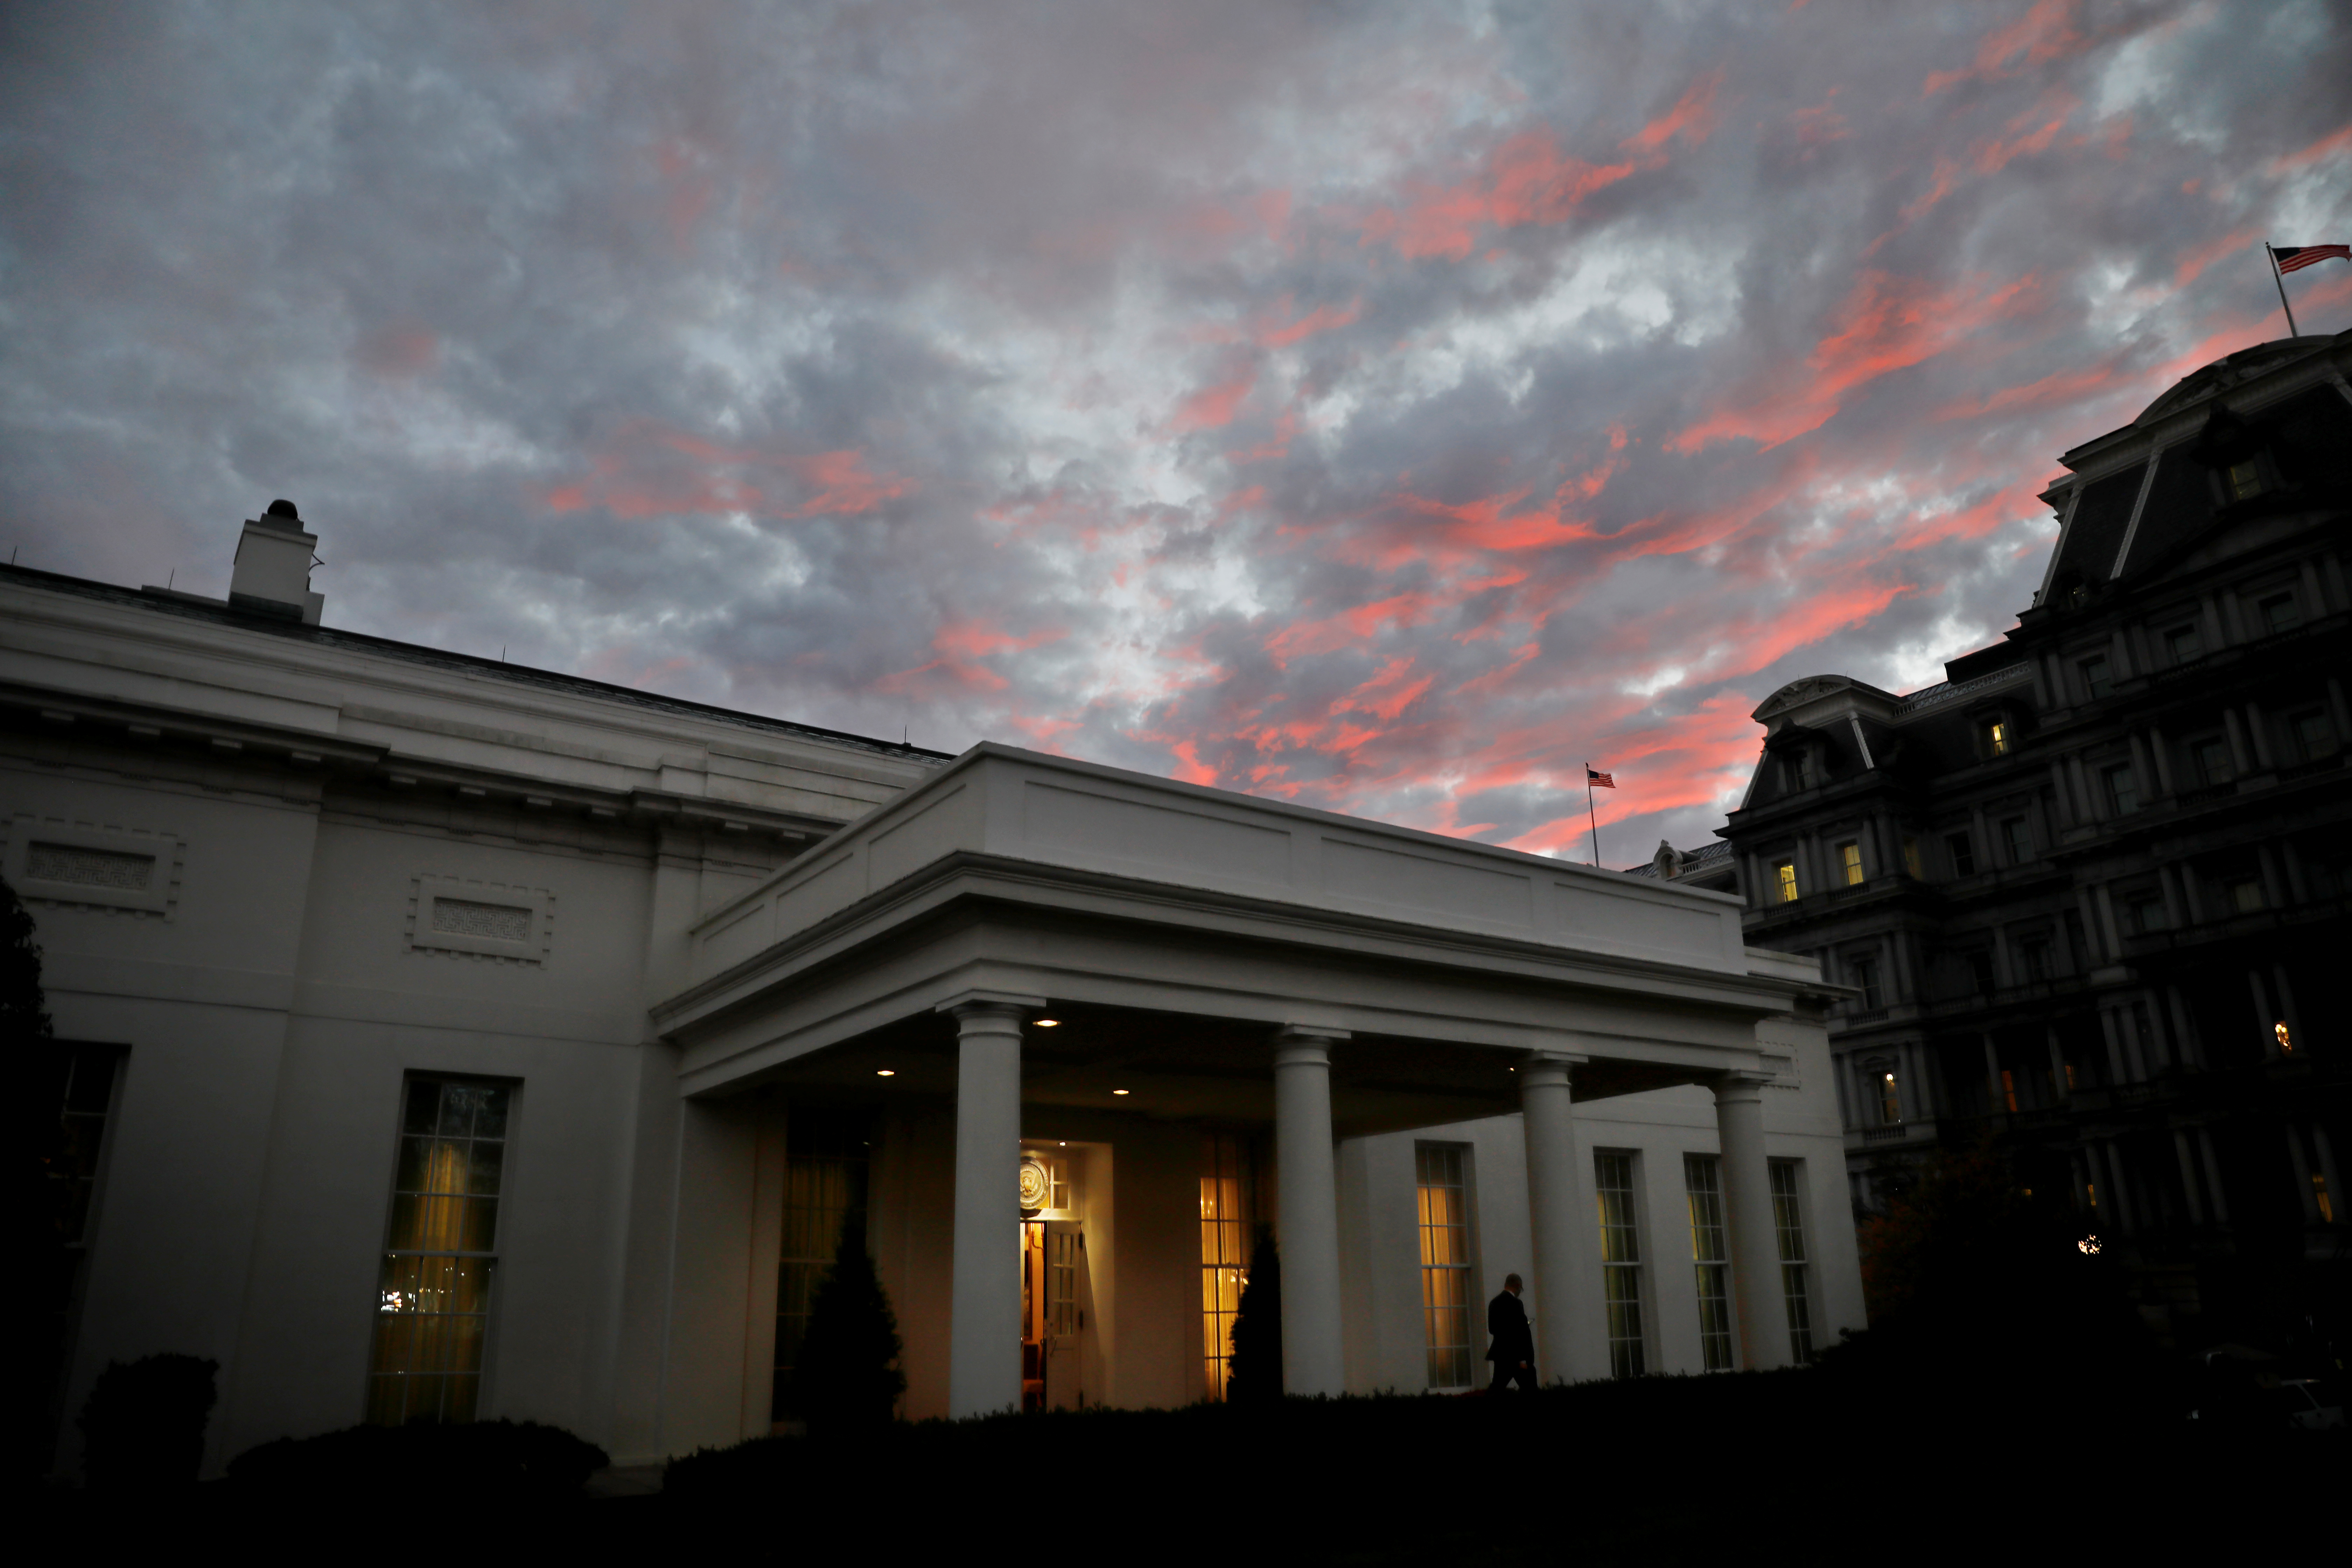 Sunset is seen over the White House, on the day of the U.S. midterm election, in Washington, D.C., U.S., November 6, 2018. REUTERS/Carlos Barria